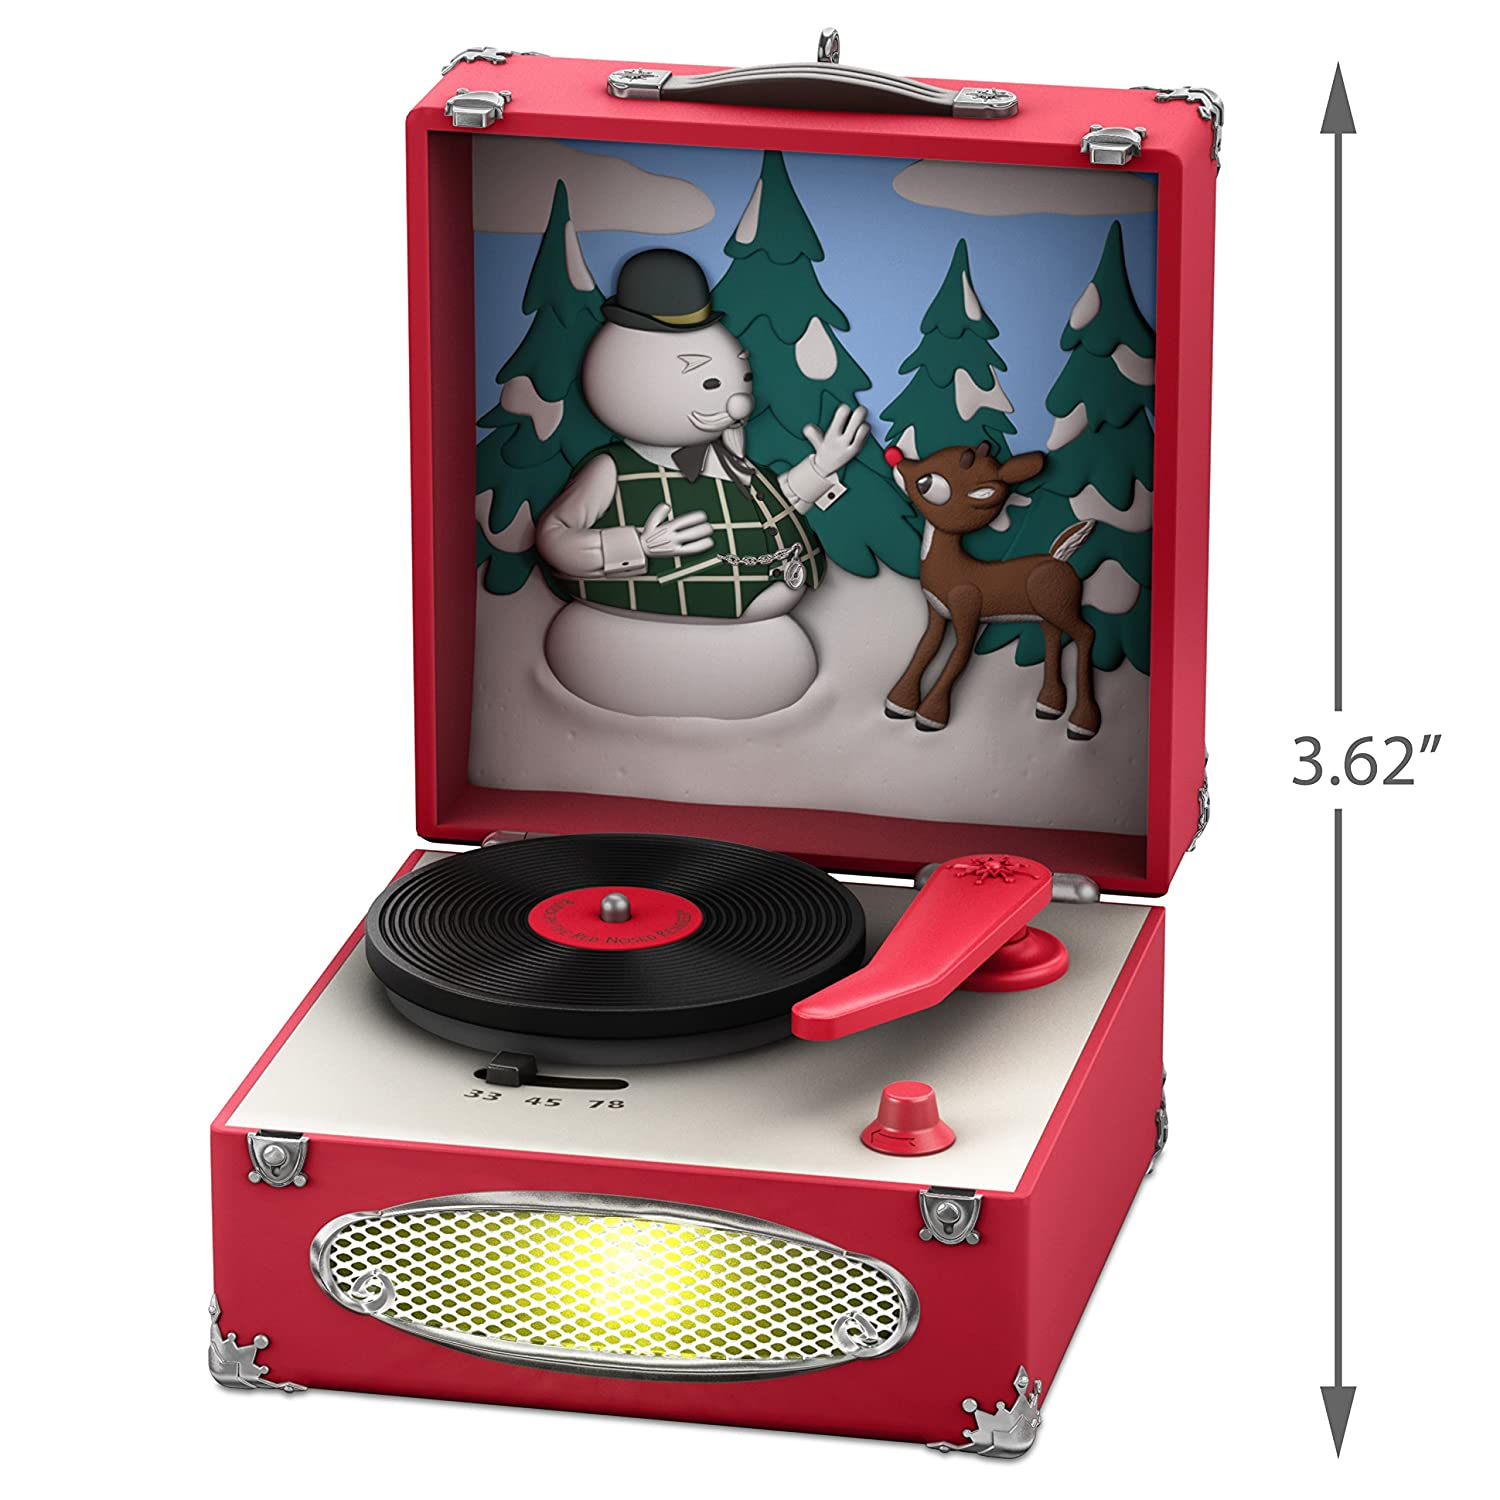 Hallmark Keepsake Christmas Ornament 2018 Year Dated National Lampoons Christmas Vacation A Fun Old Fashioned Family Christmas With Sound and Light Hallmark Cards